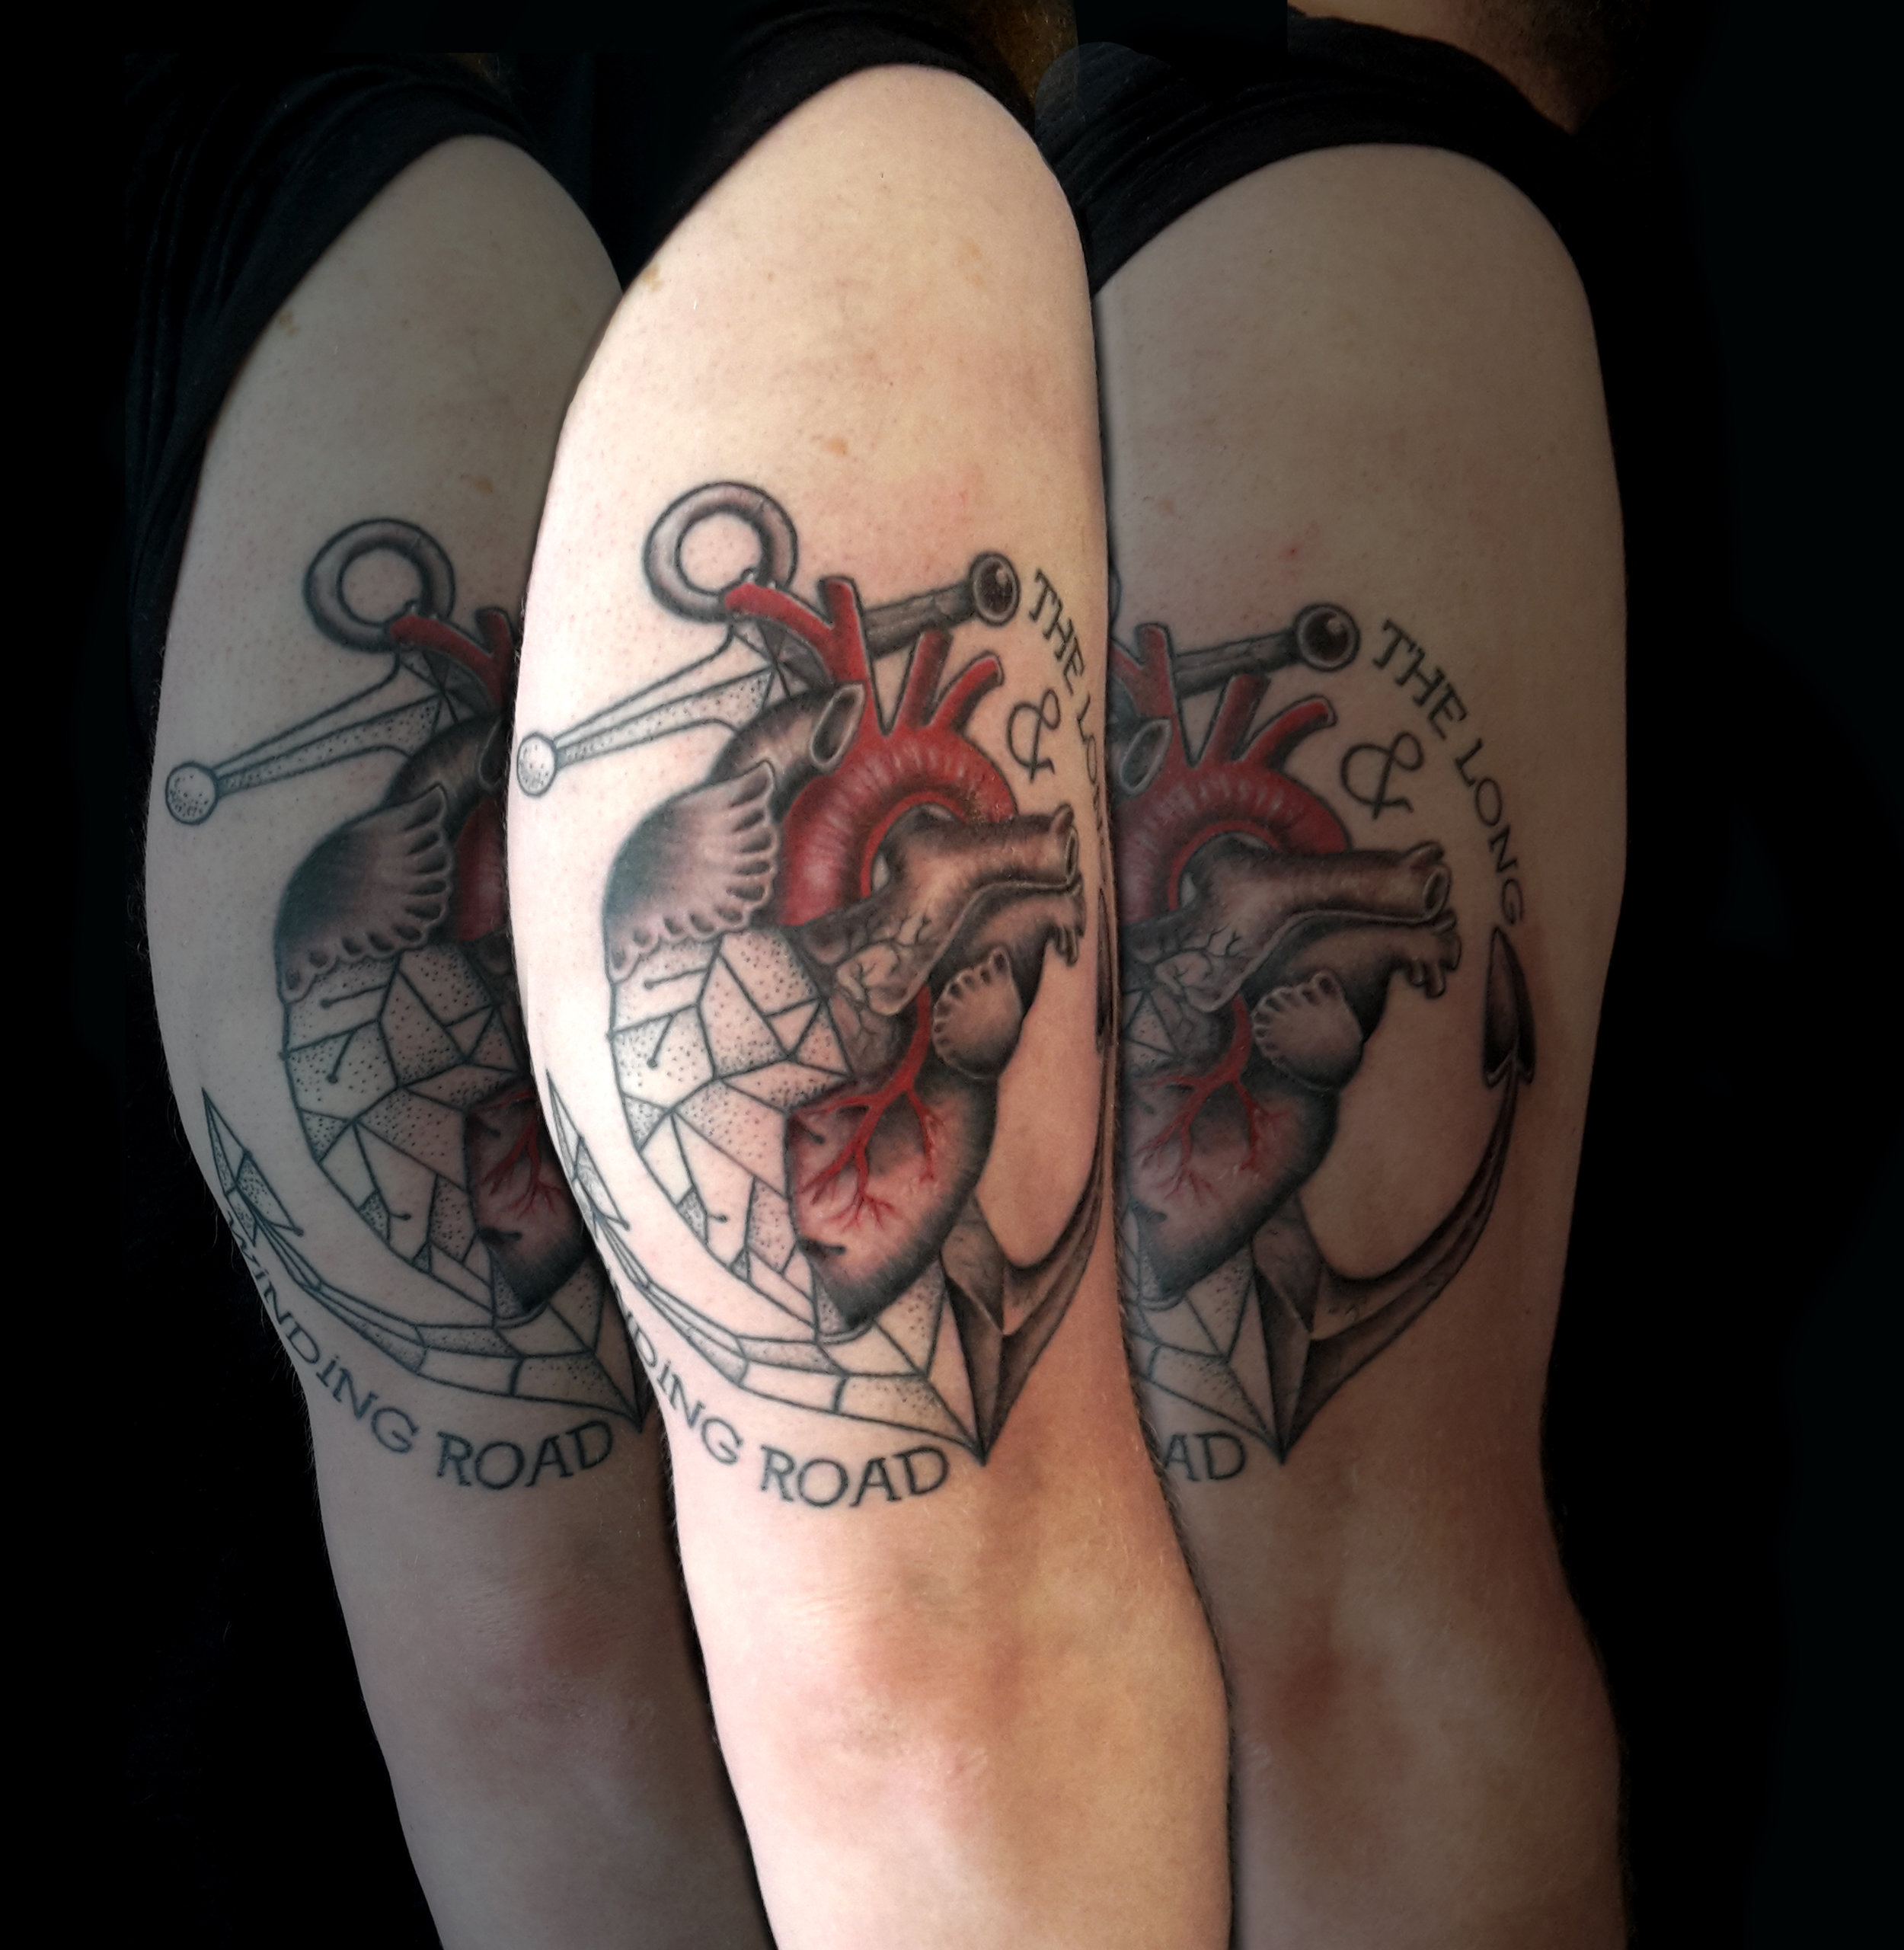 fioniverse-gil-tattoo-beatles-winding-road-heart-anchor.jpeg